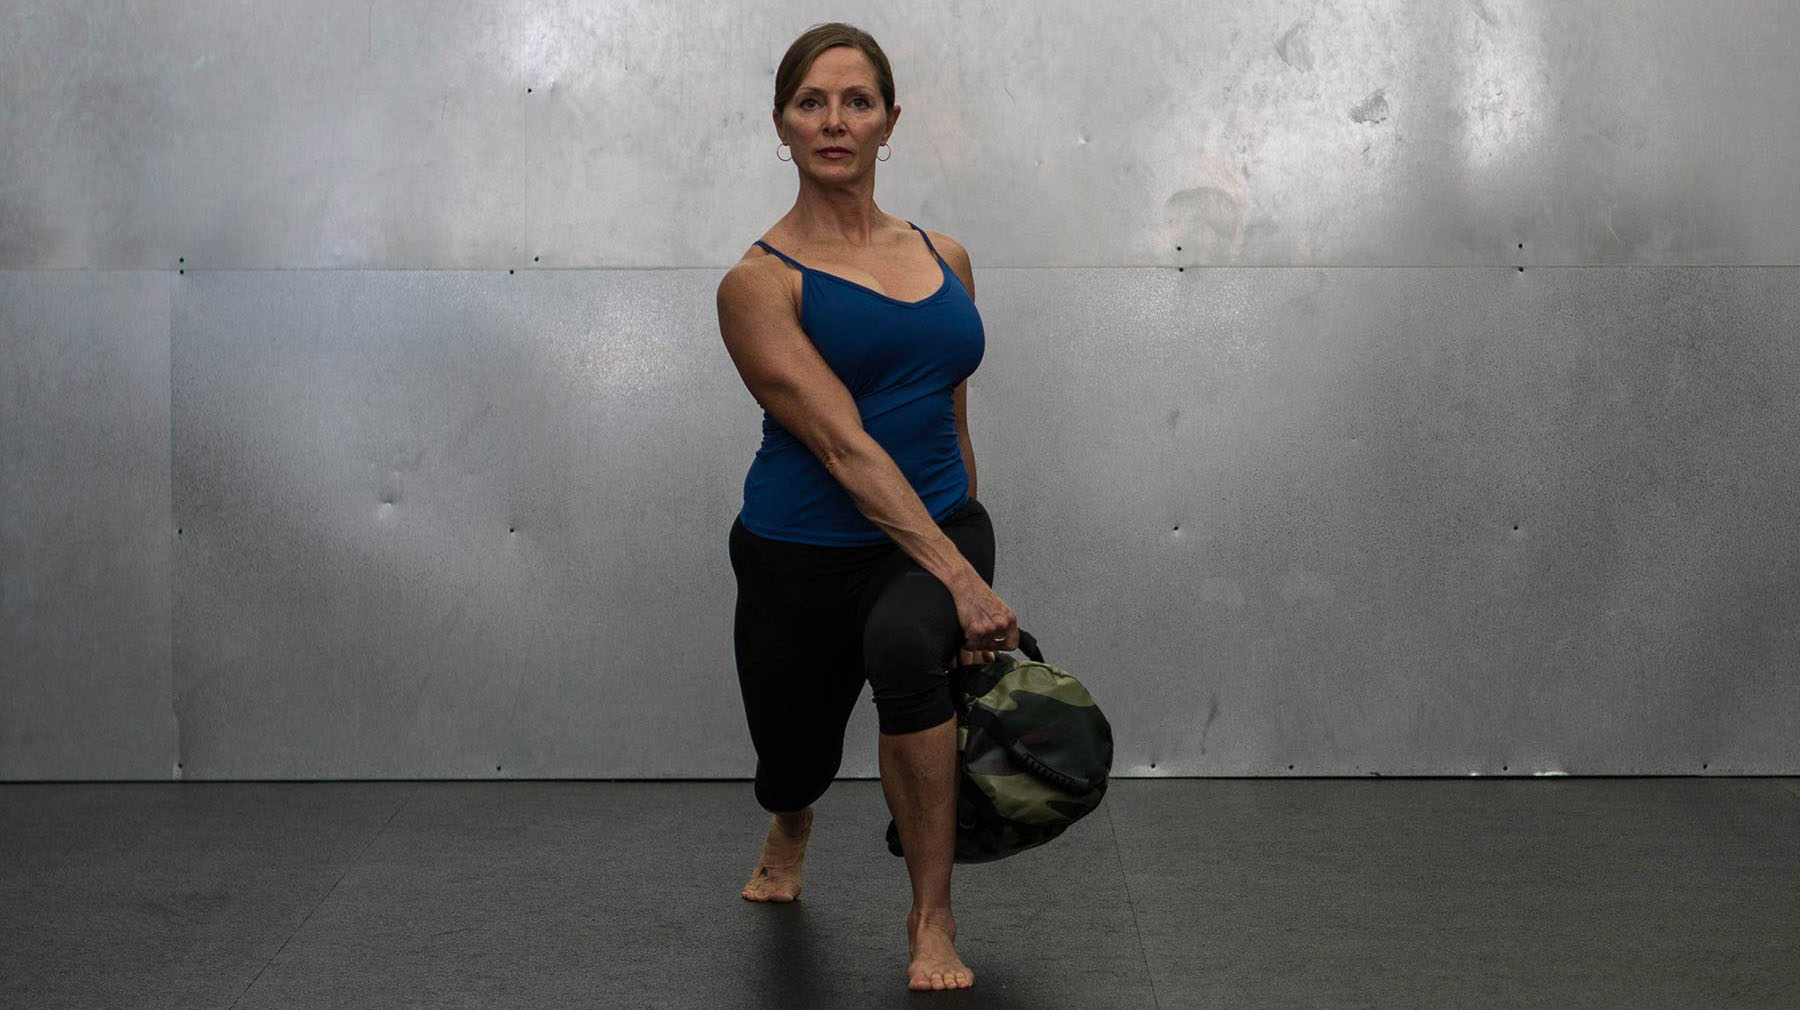 30-minute Ultimate Sandbag Workout | Elizabeth Andrews | Expert Articles | 8/5/2014